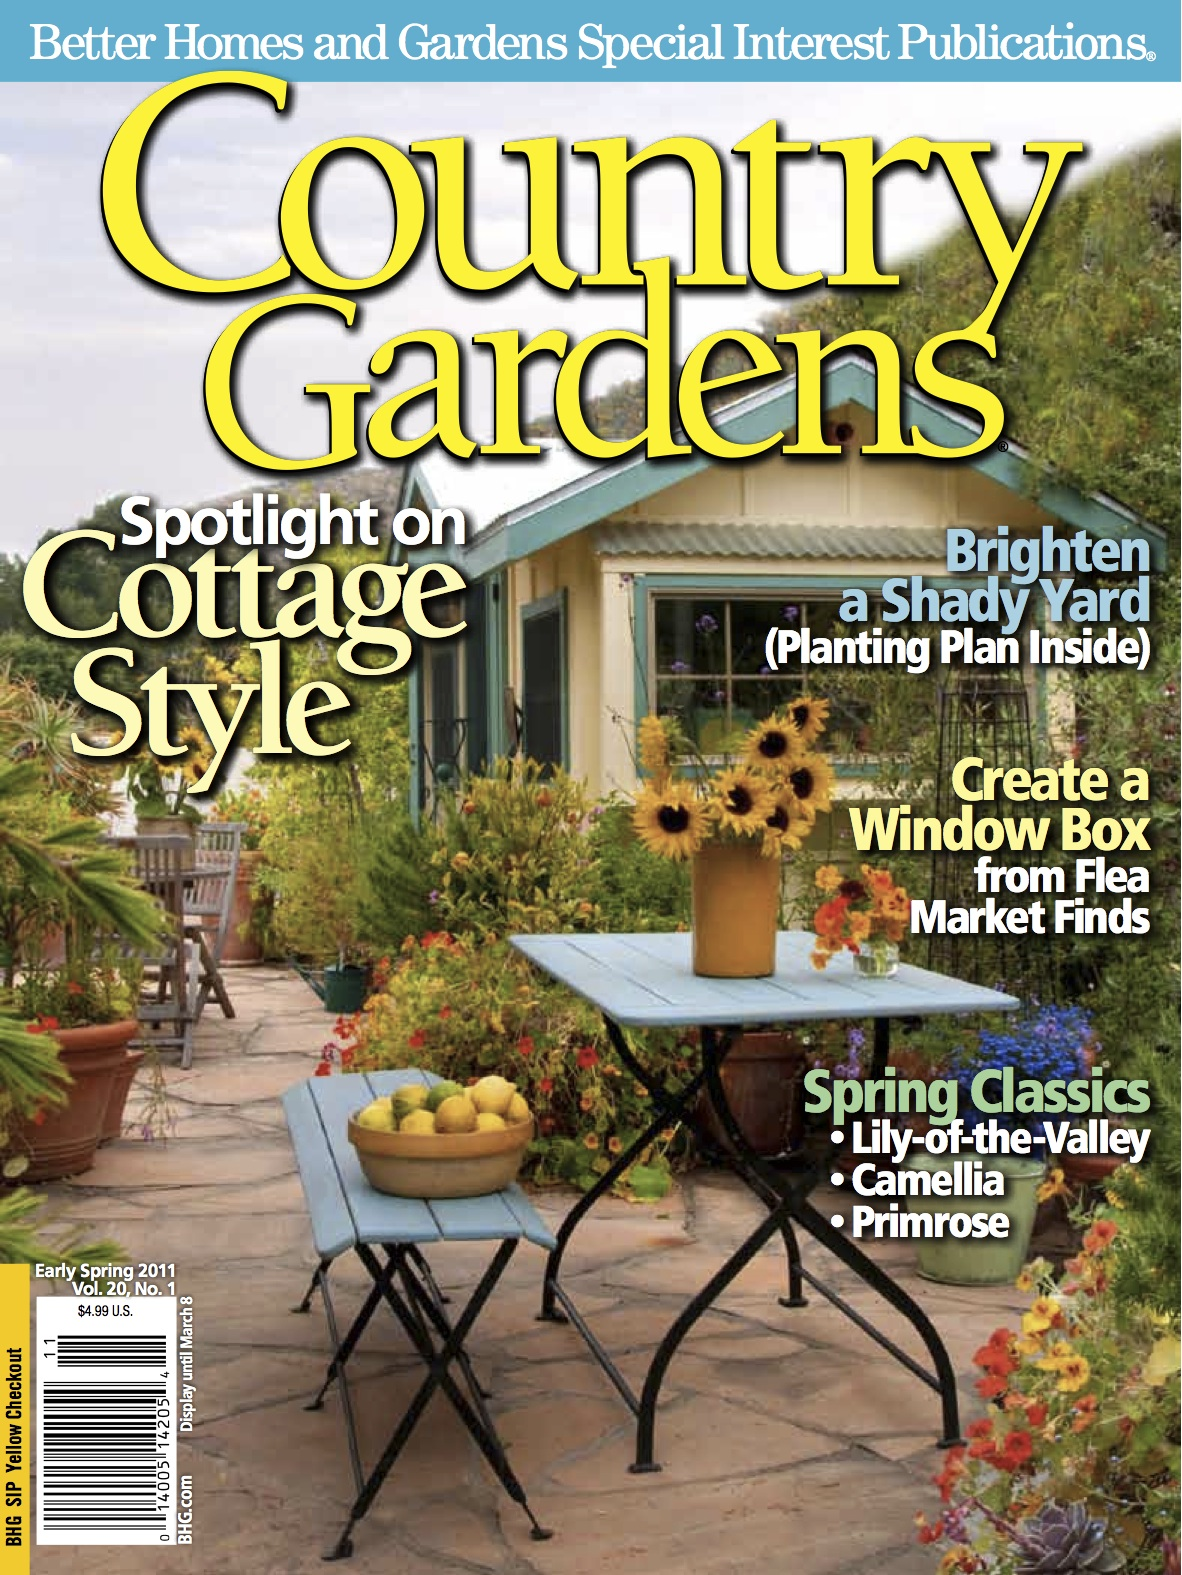 Country Gardens Magazine Features Our Little Cottage Garden